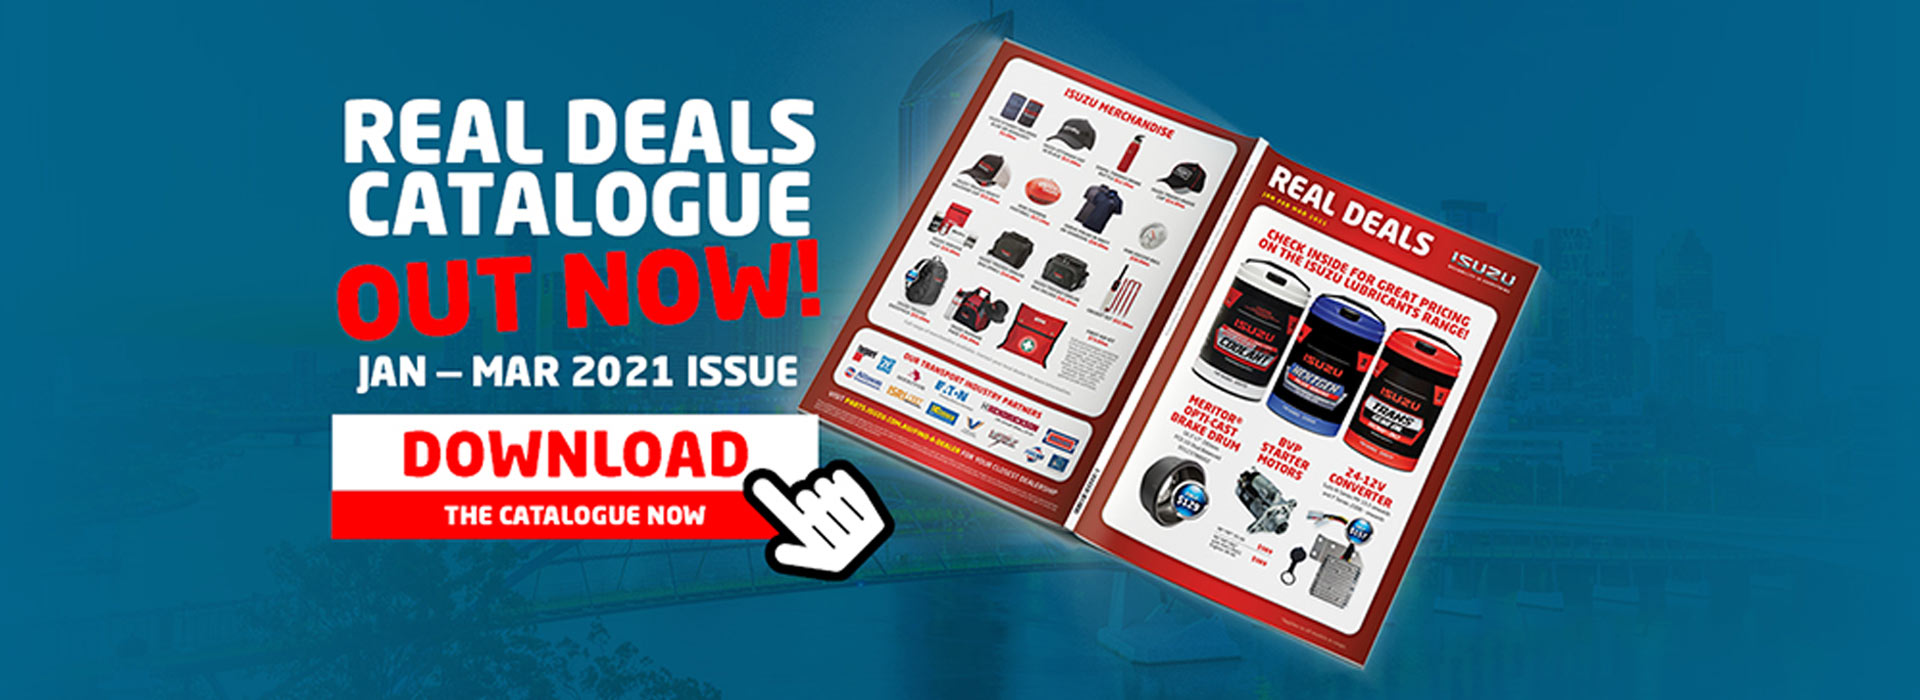 BrisbaneIsuzu_Real_Deals_Catalogue-Jan21